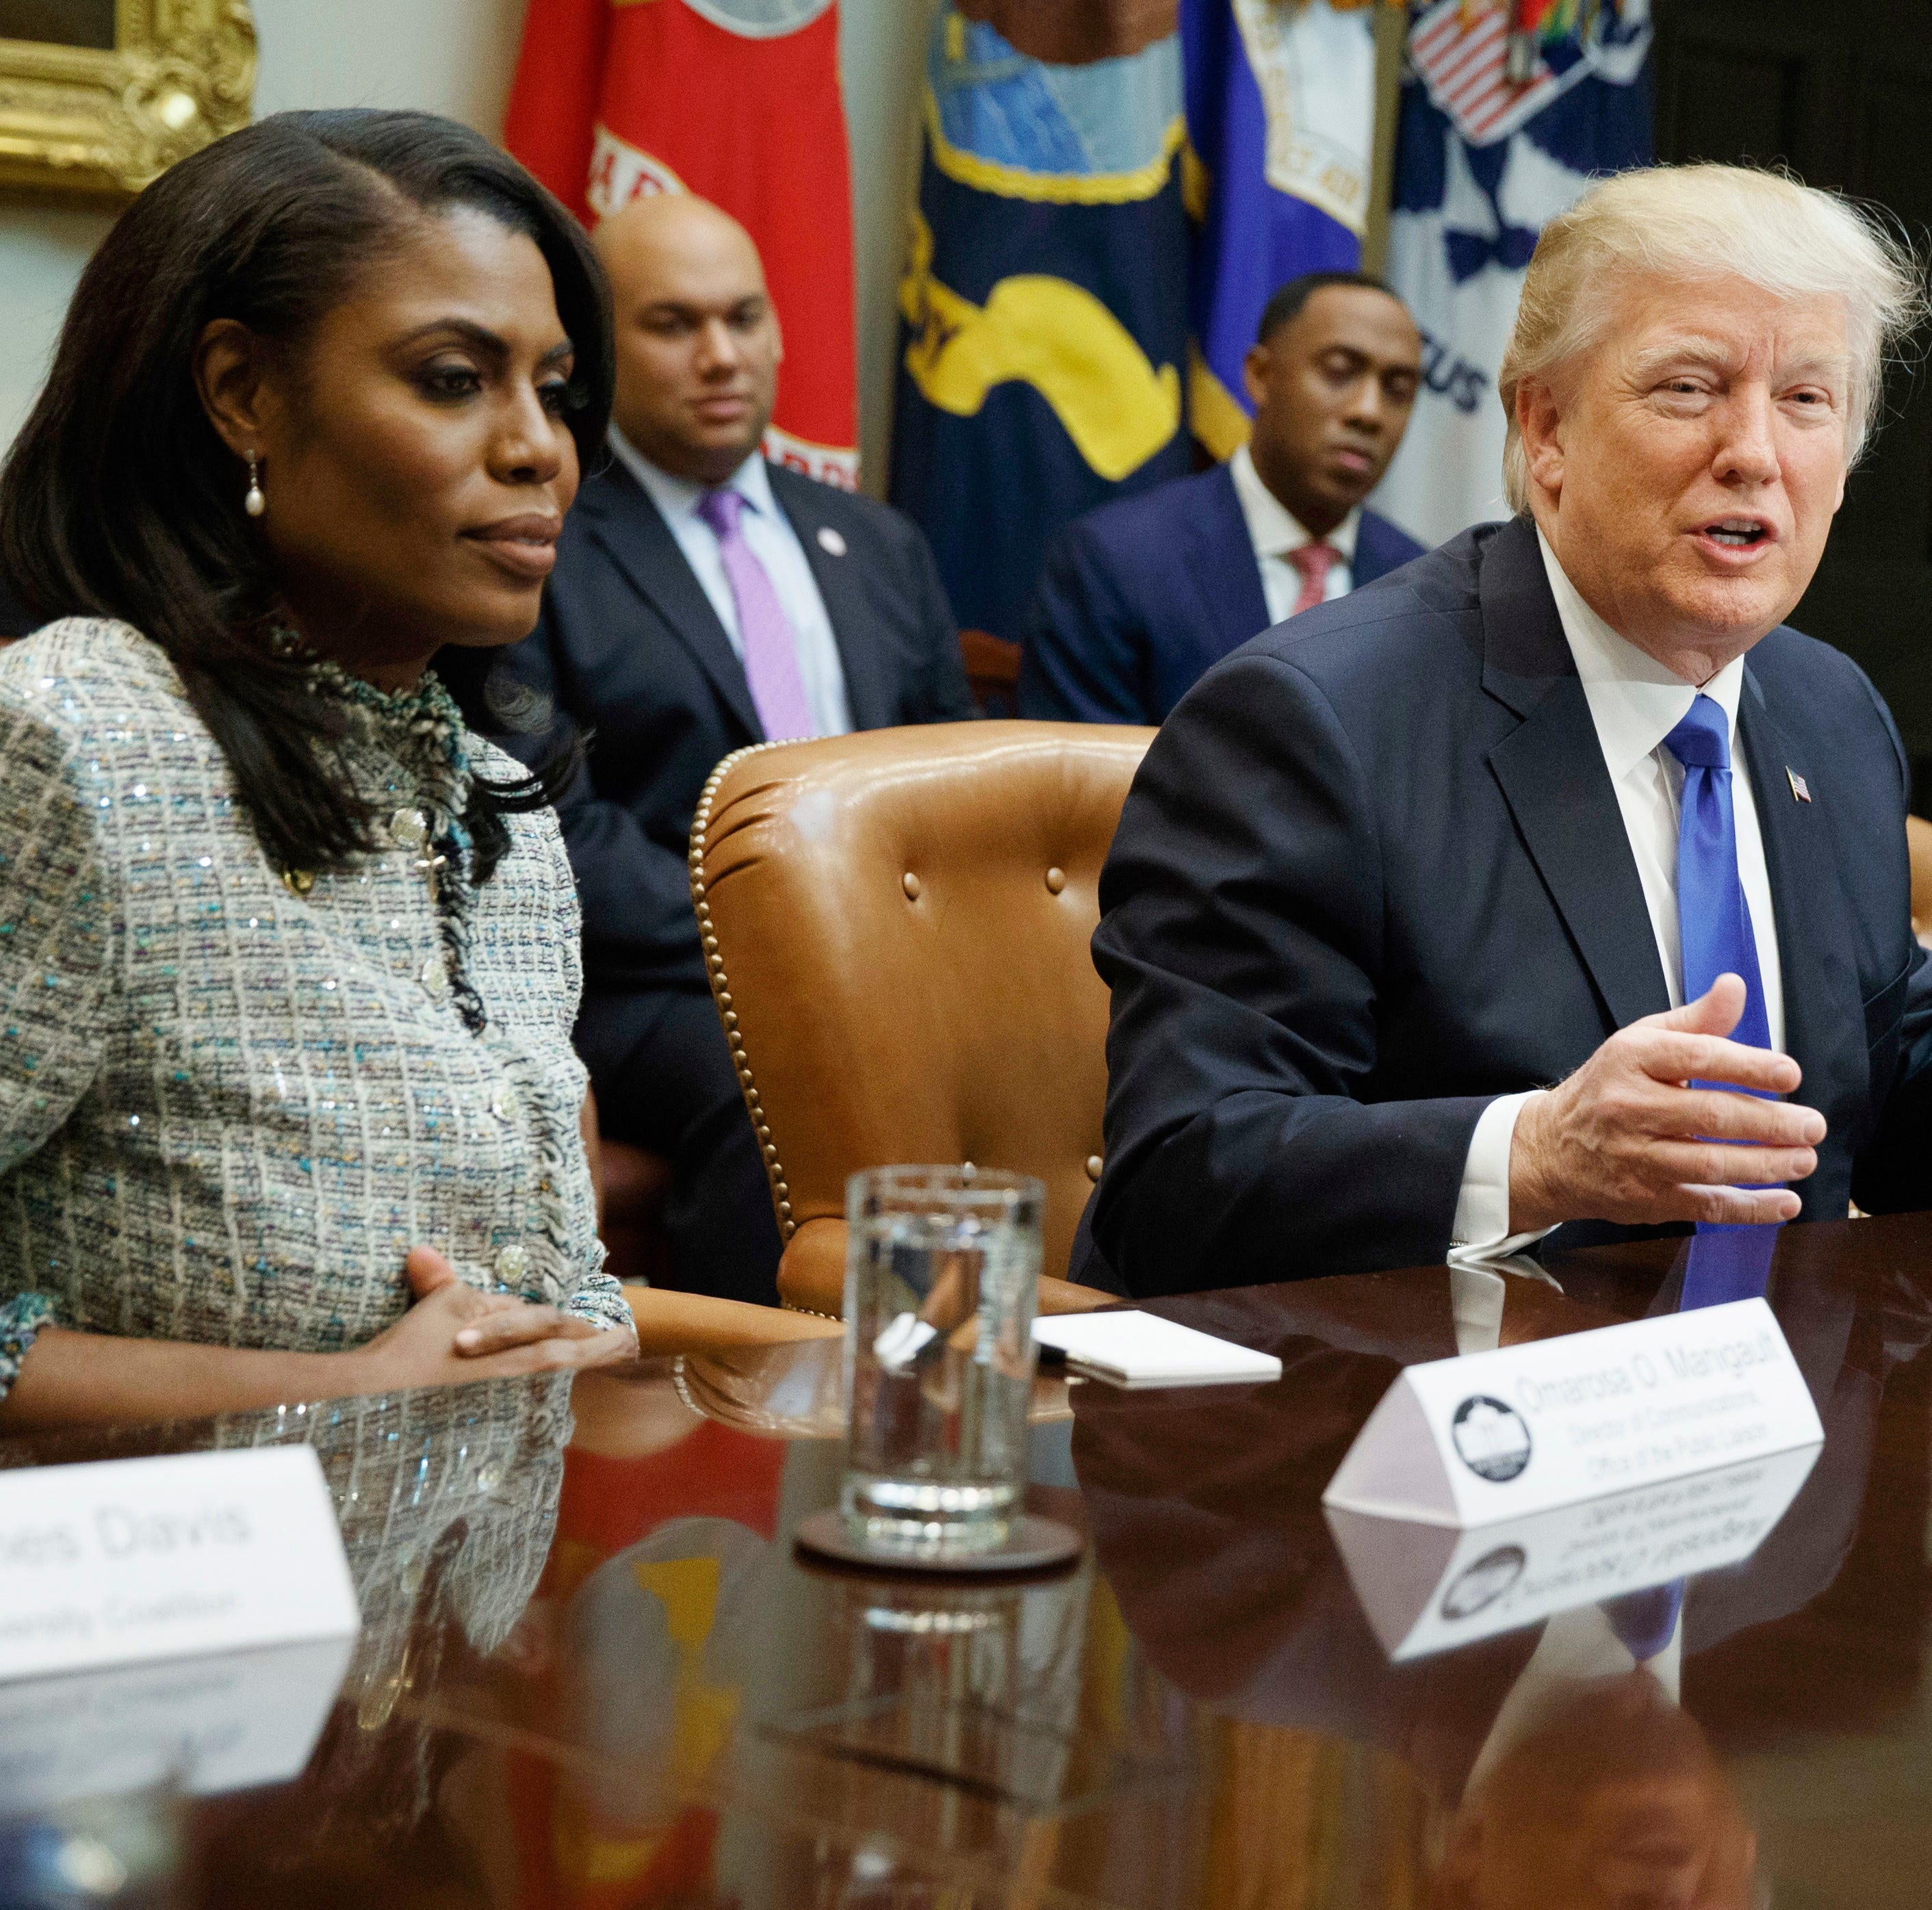 President Donald Trump and then-aide Omarosa Manigault Newman in happier times.